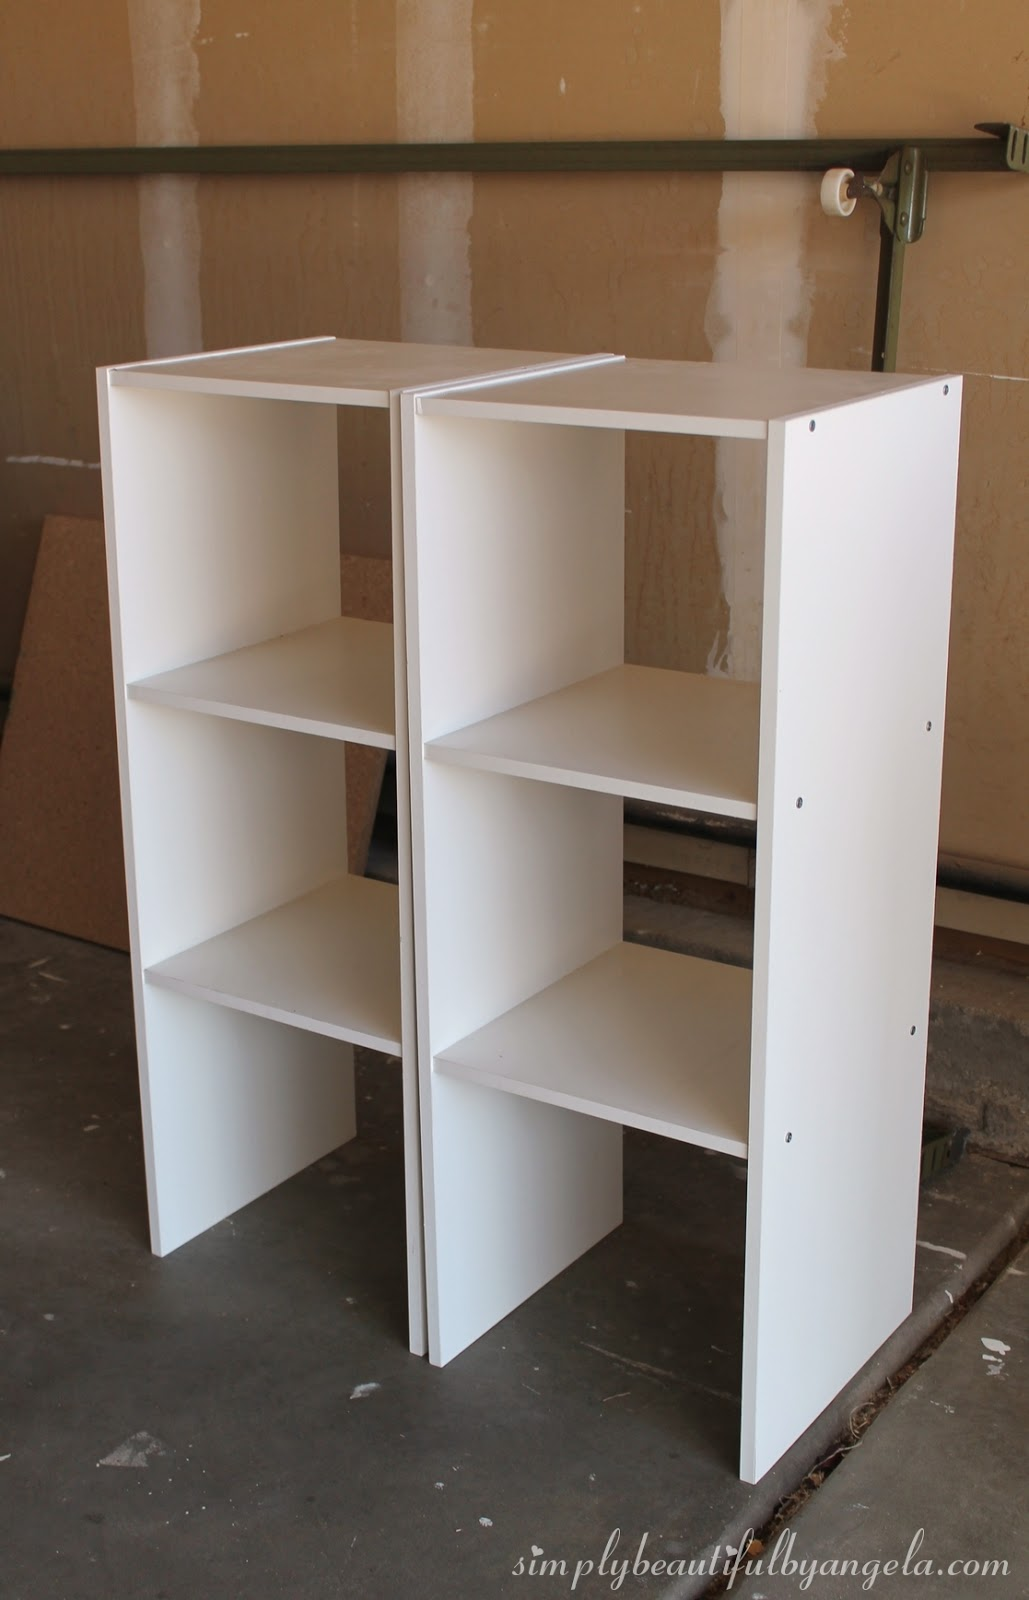 DIY Storage Cabinet Using Cheap Cube Units | Simply ...